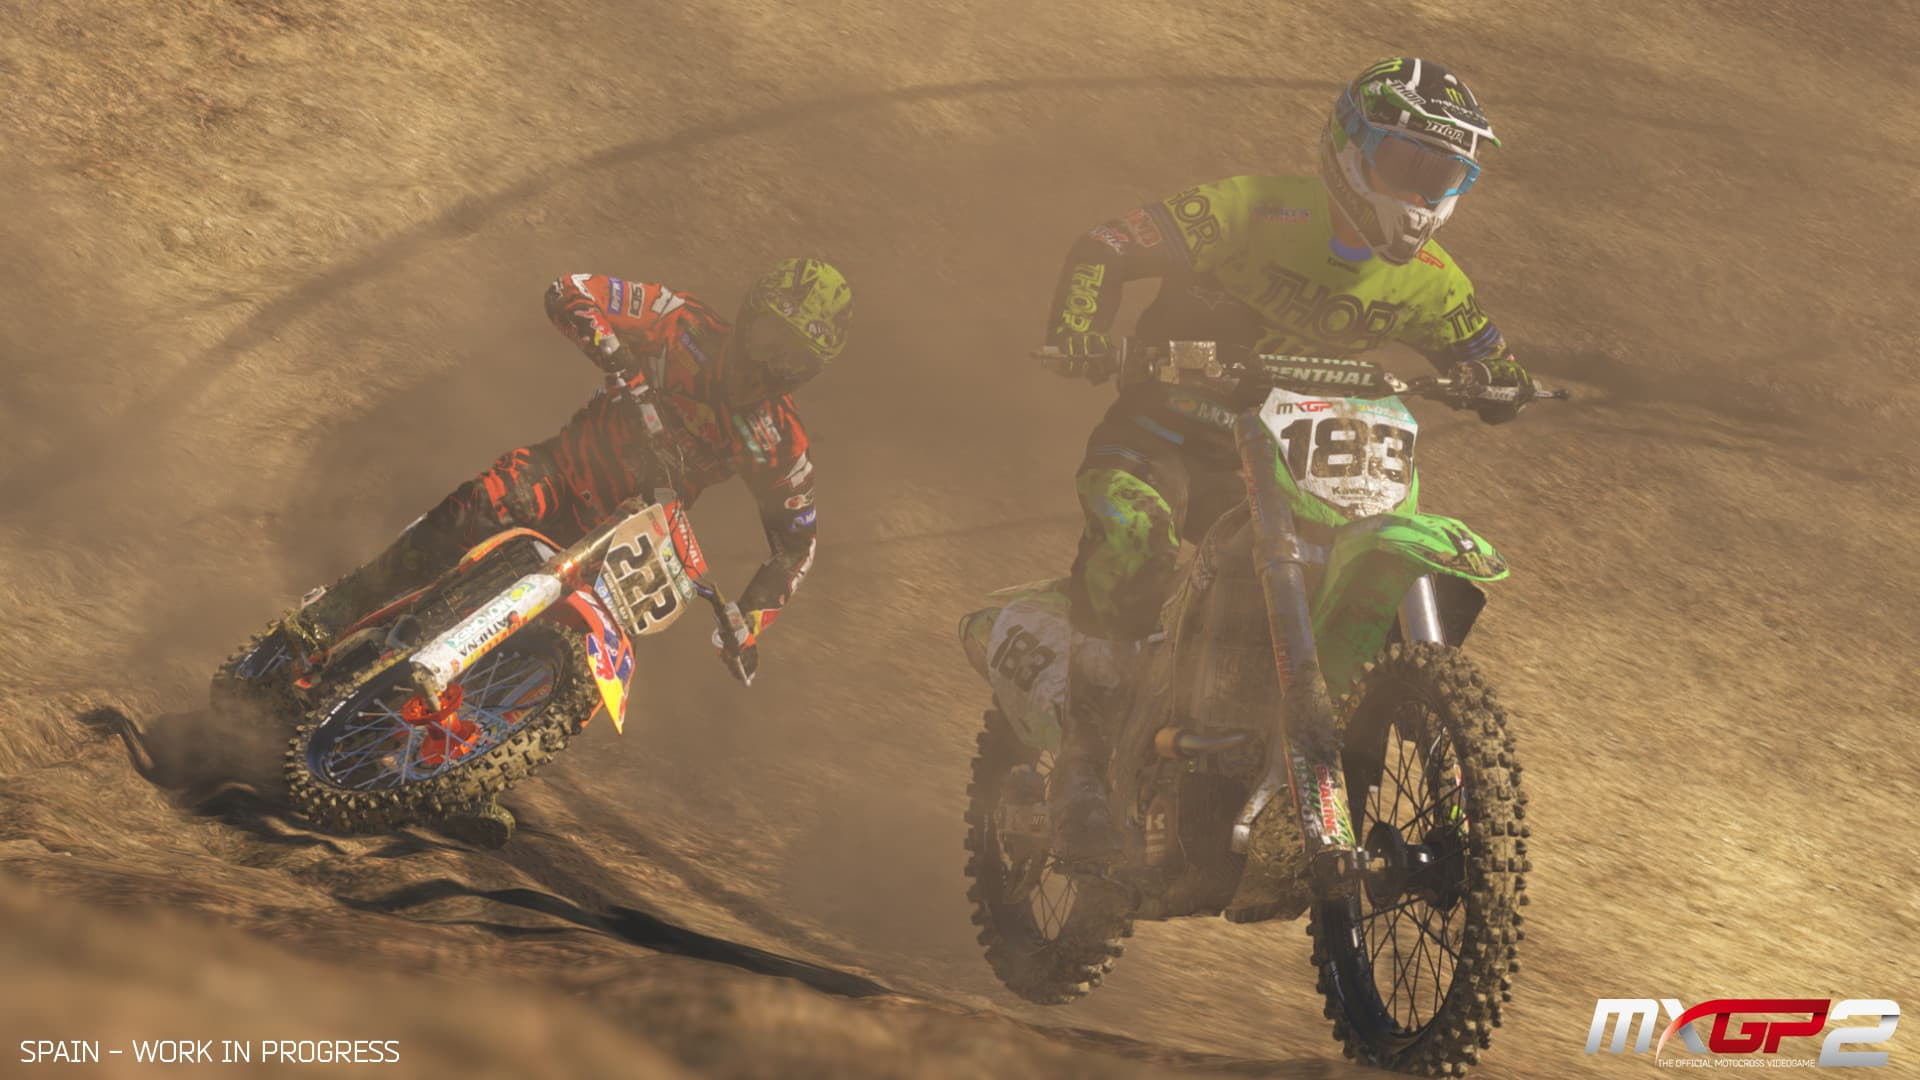 MXGP 2: The Ophphicial Videogame